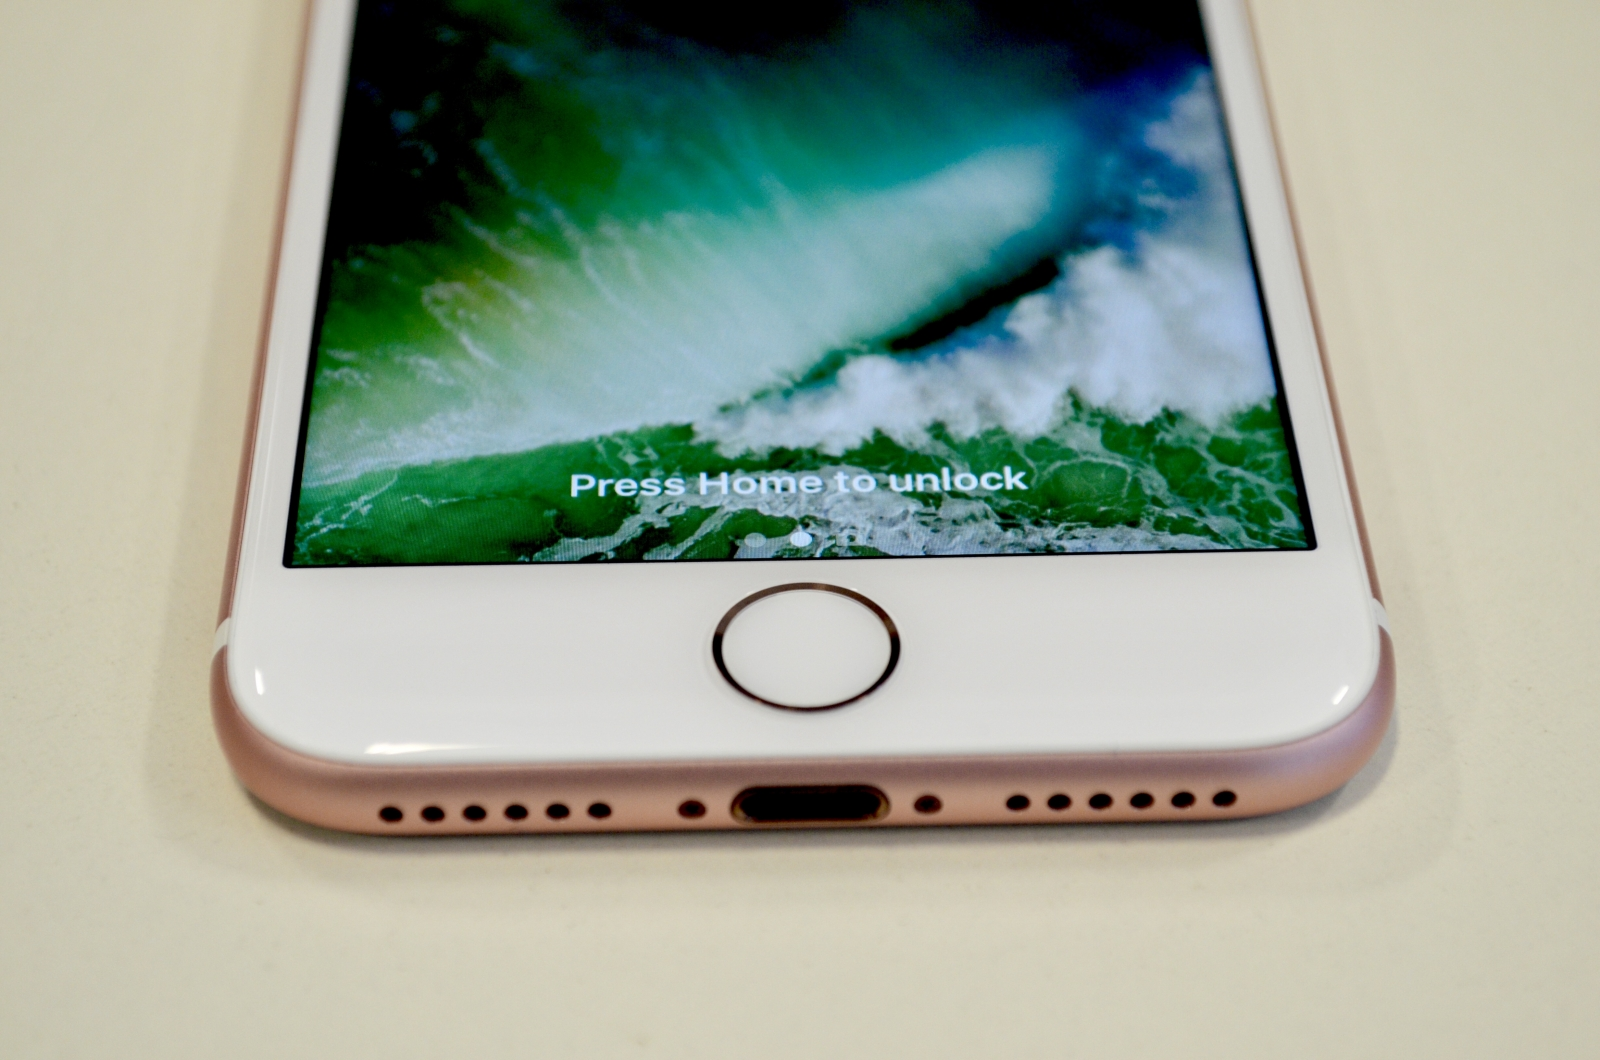 Apple iPhone 7 home button